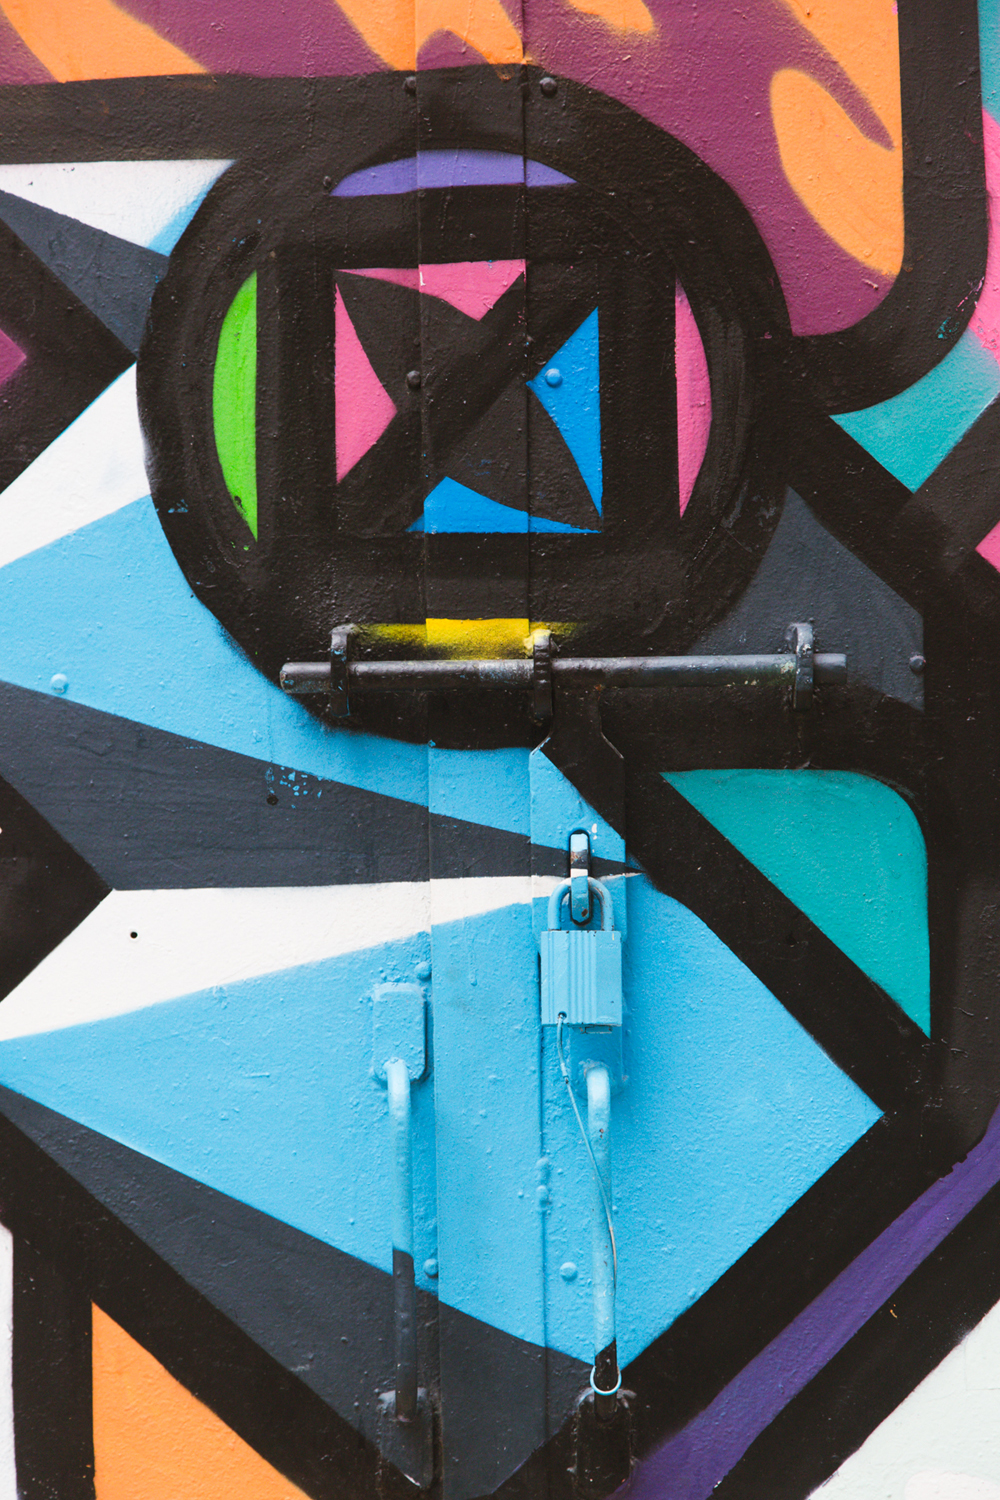 Details on Rukkit geometric fox mural – Photo by Tracy Wong for Home Journal